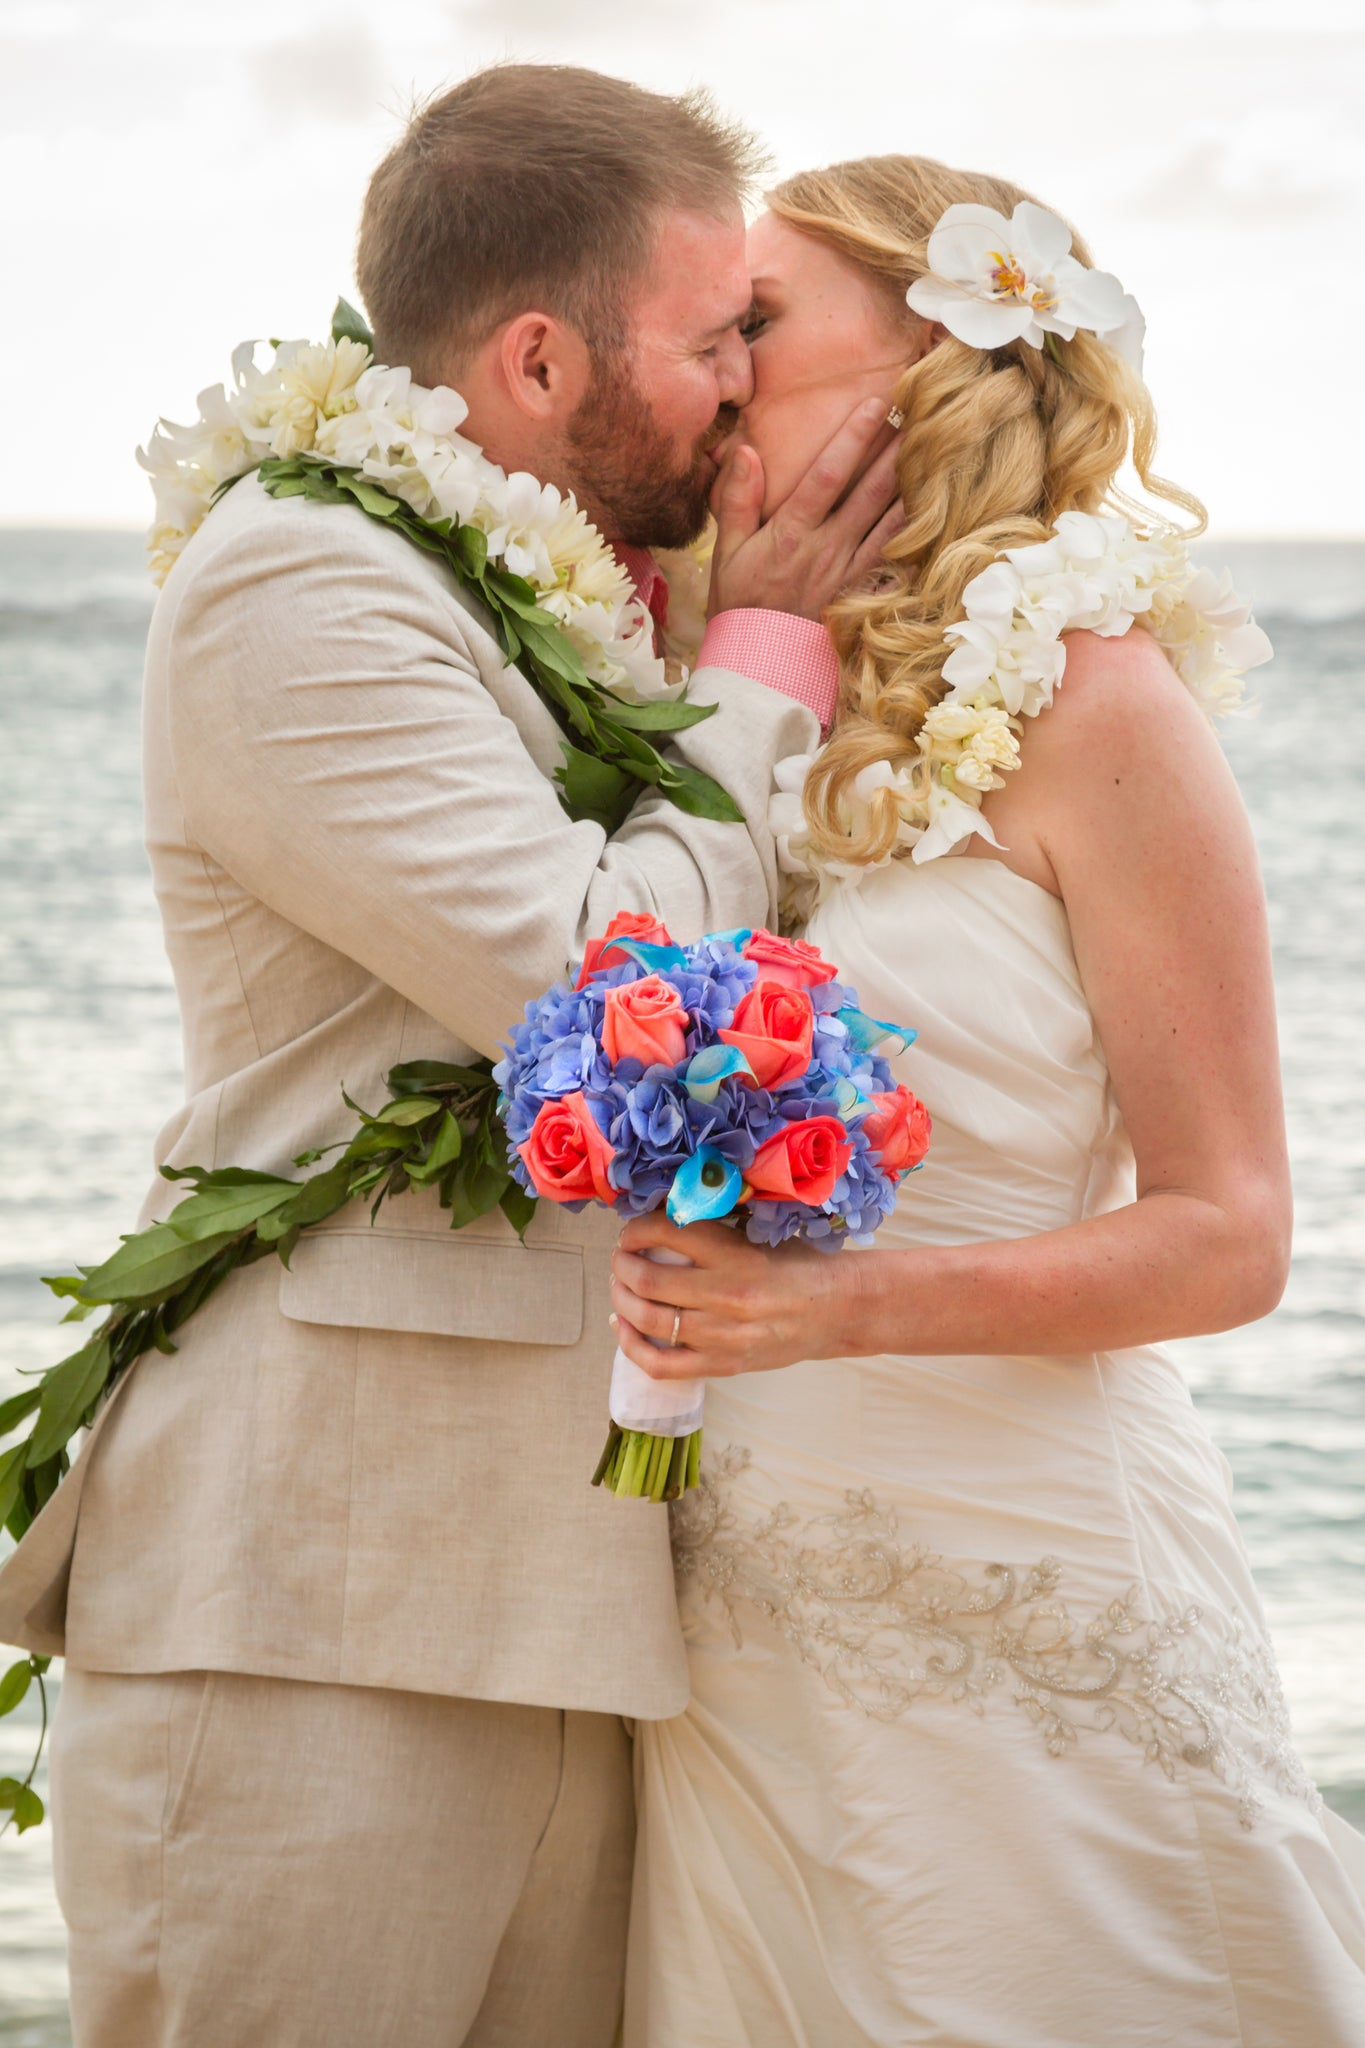 You may kiss the Bride. A Bride and Groom kiss on the beach in Hawaii